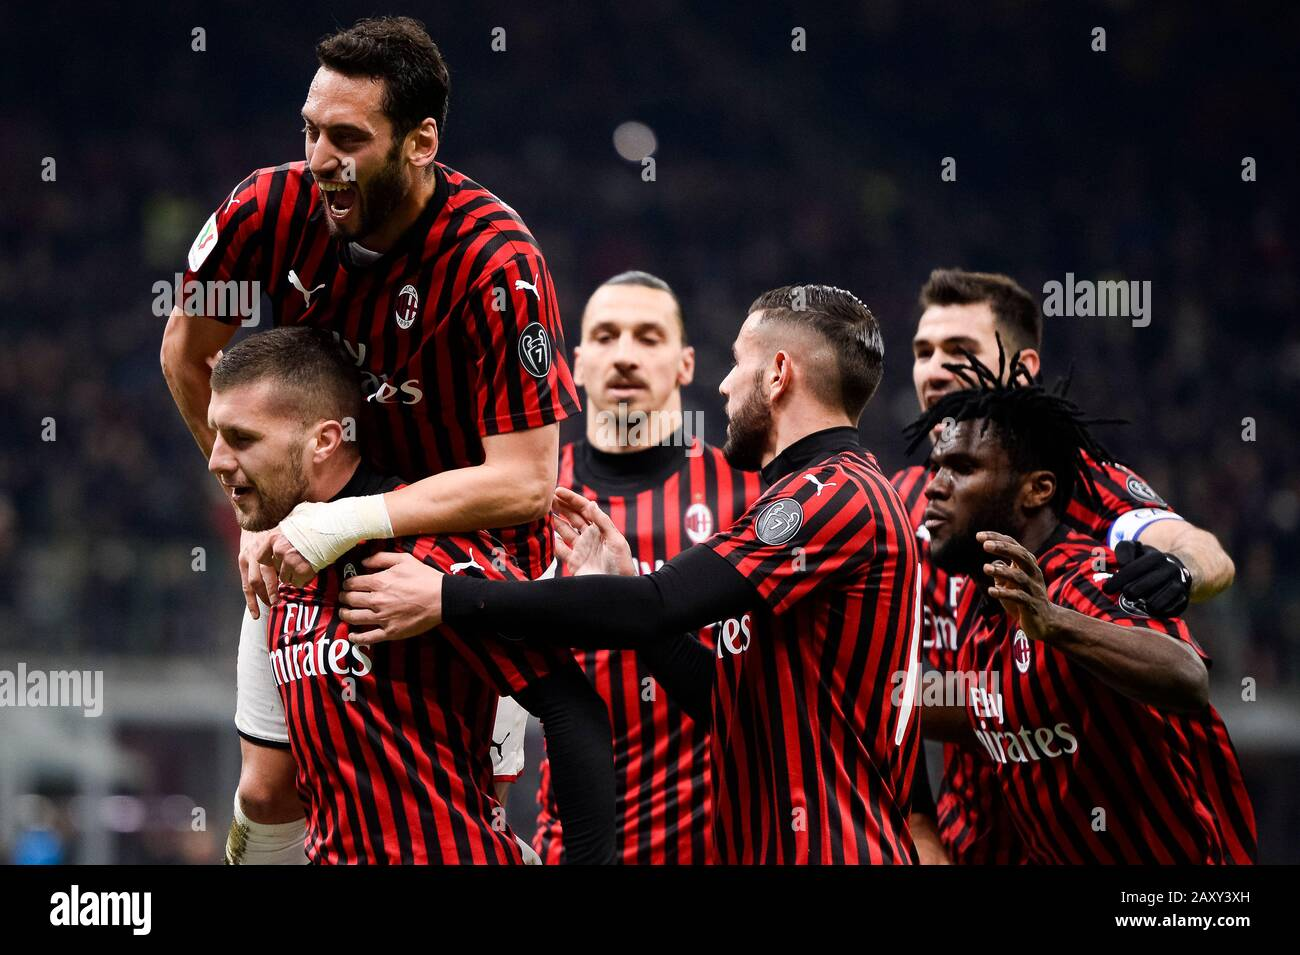 Milan Italy 13 February 2020 Ante Rebic L Of Ac Milan Celebrates With His Teammates After